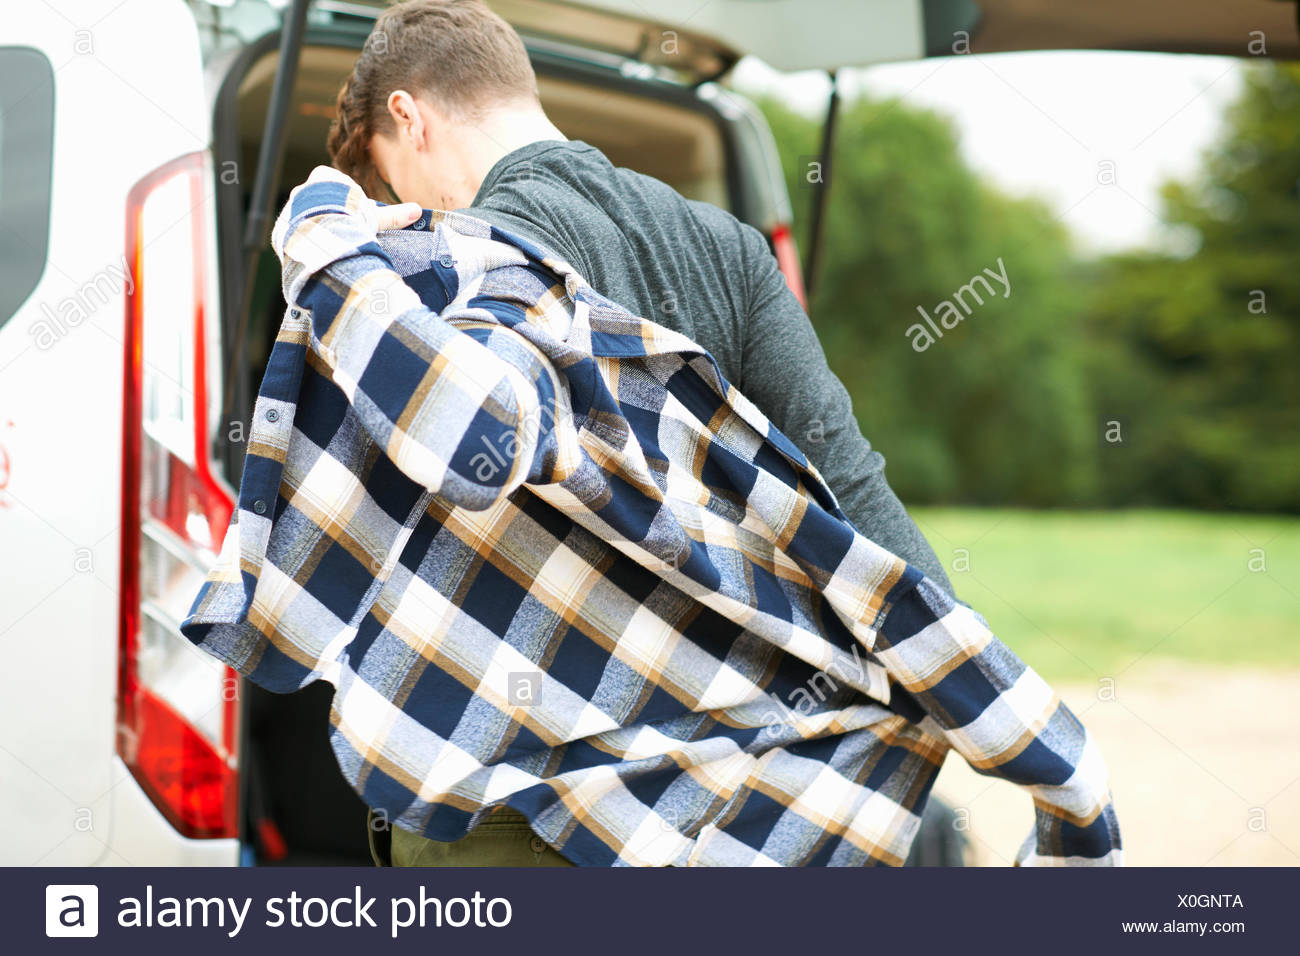 Rear view of man by automobile boot putting on plaid shirt - Stock Image